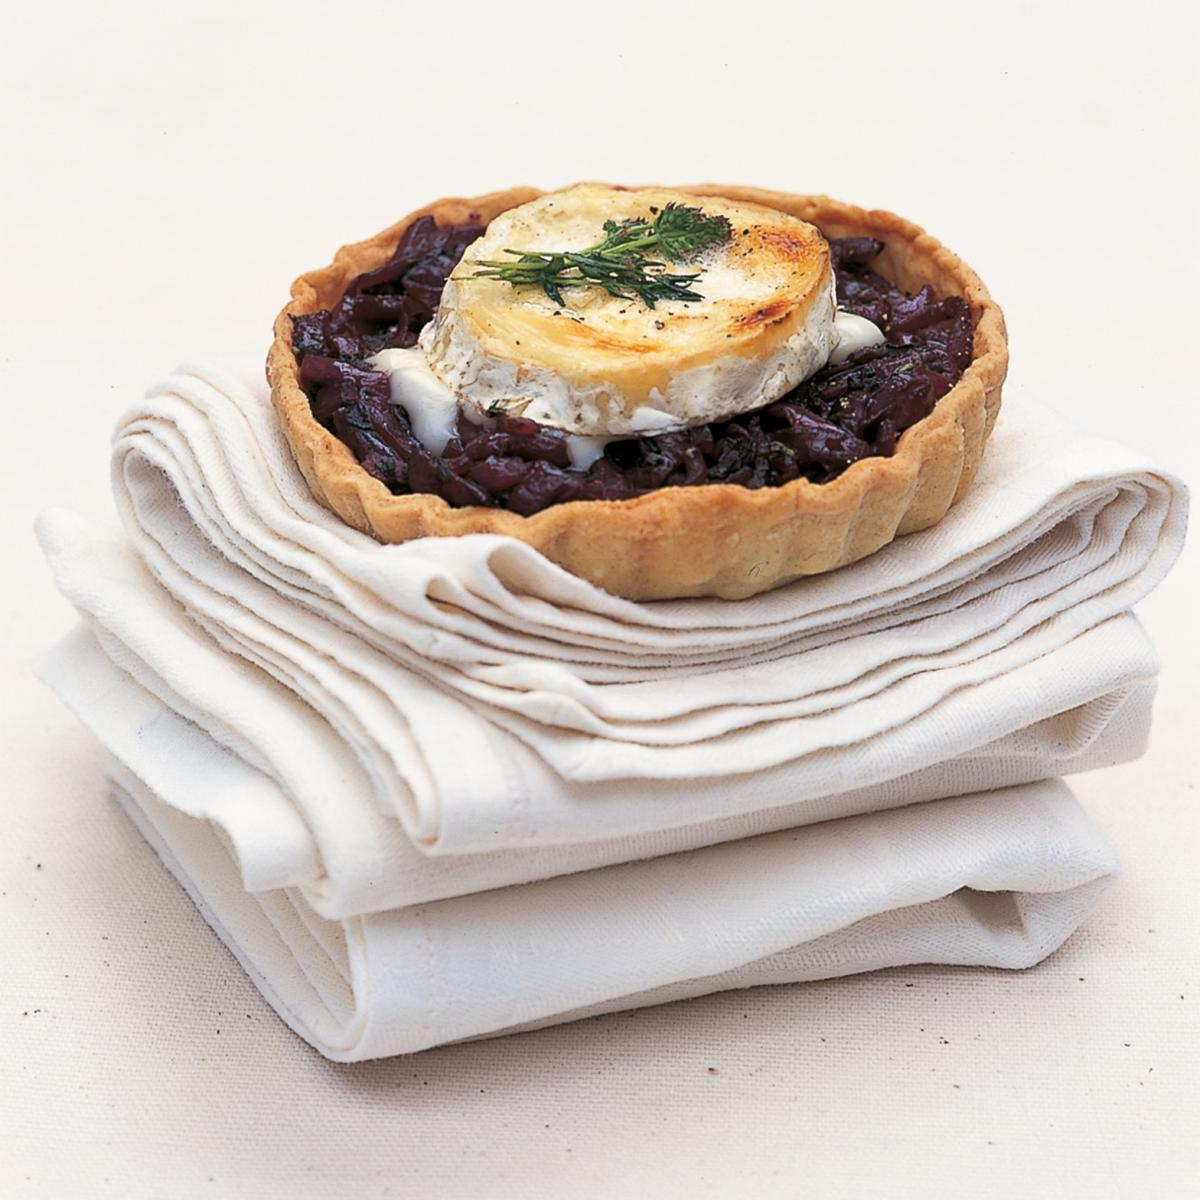 ... onion tarts with goats cheese the long slow cooking of red onions and